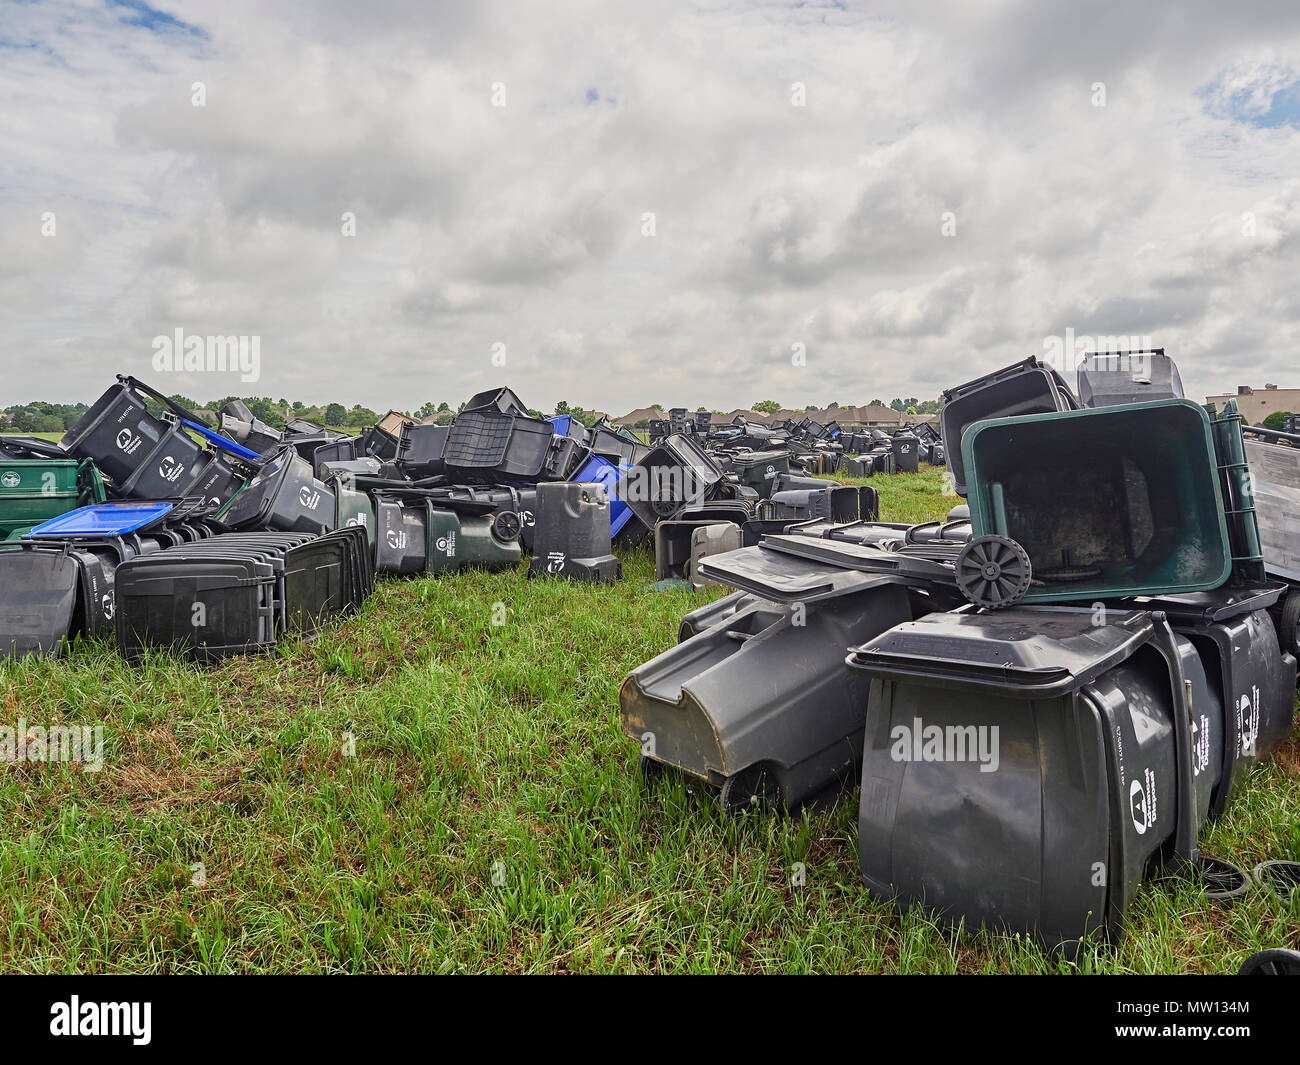 Large plastic trash cans discarded and piled or stacked in a field waiting for removal in Pike Road Alabama, USA. - Stock Image